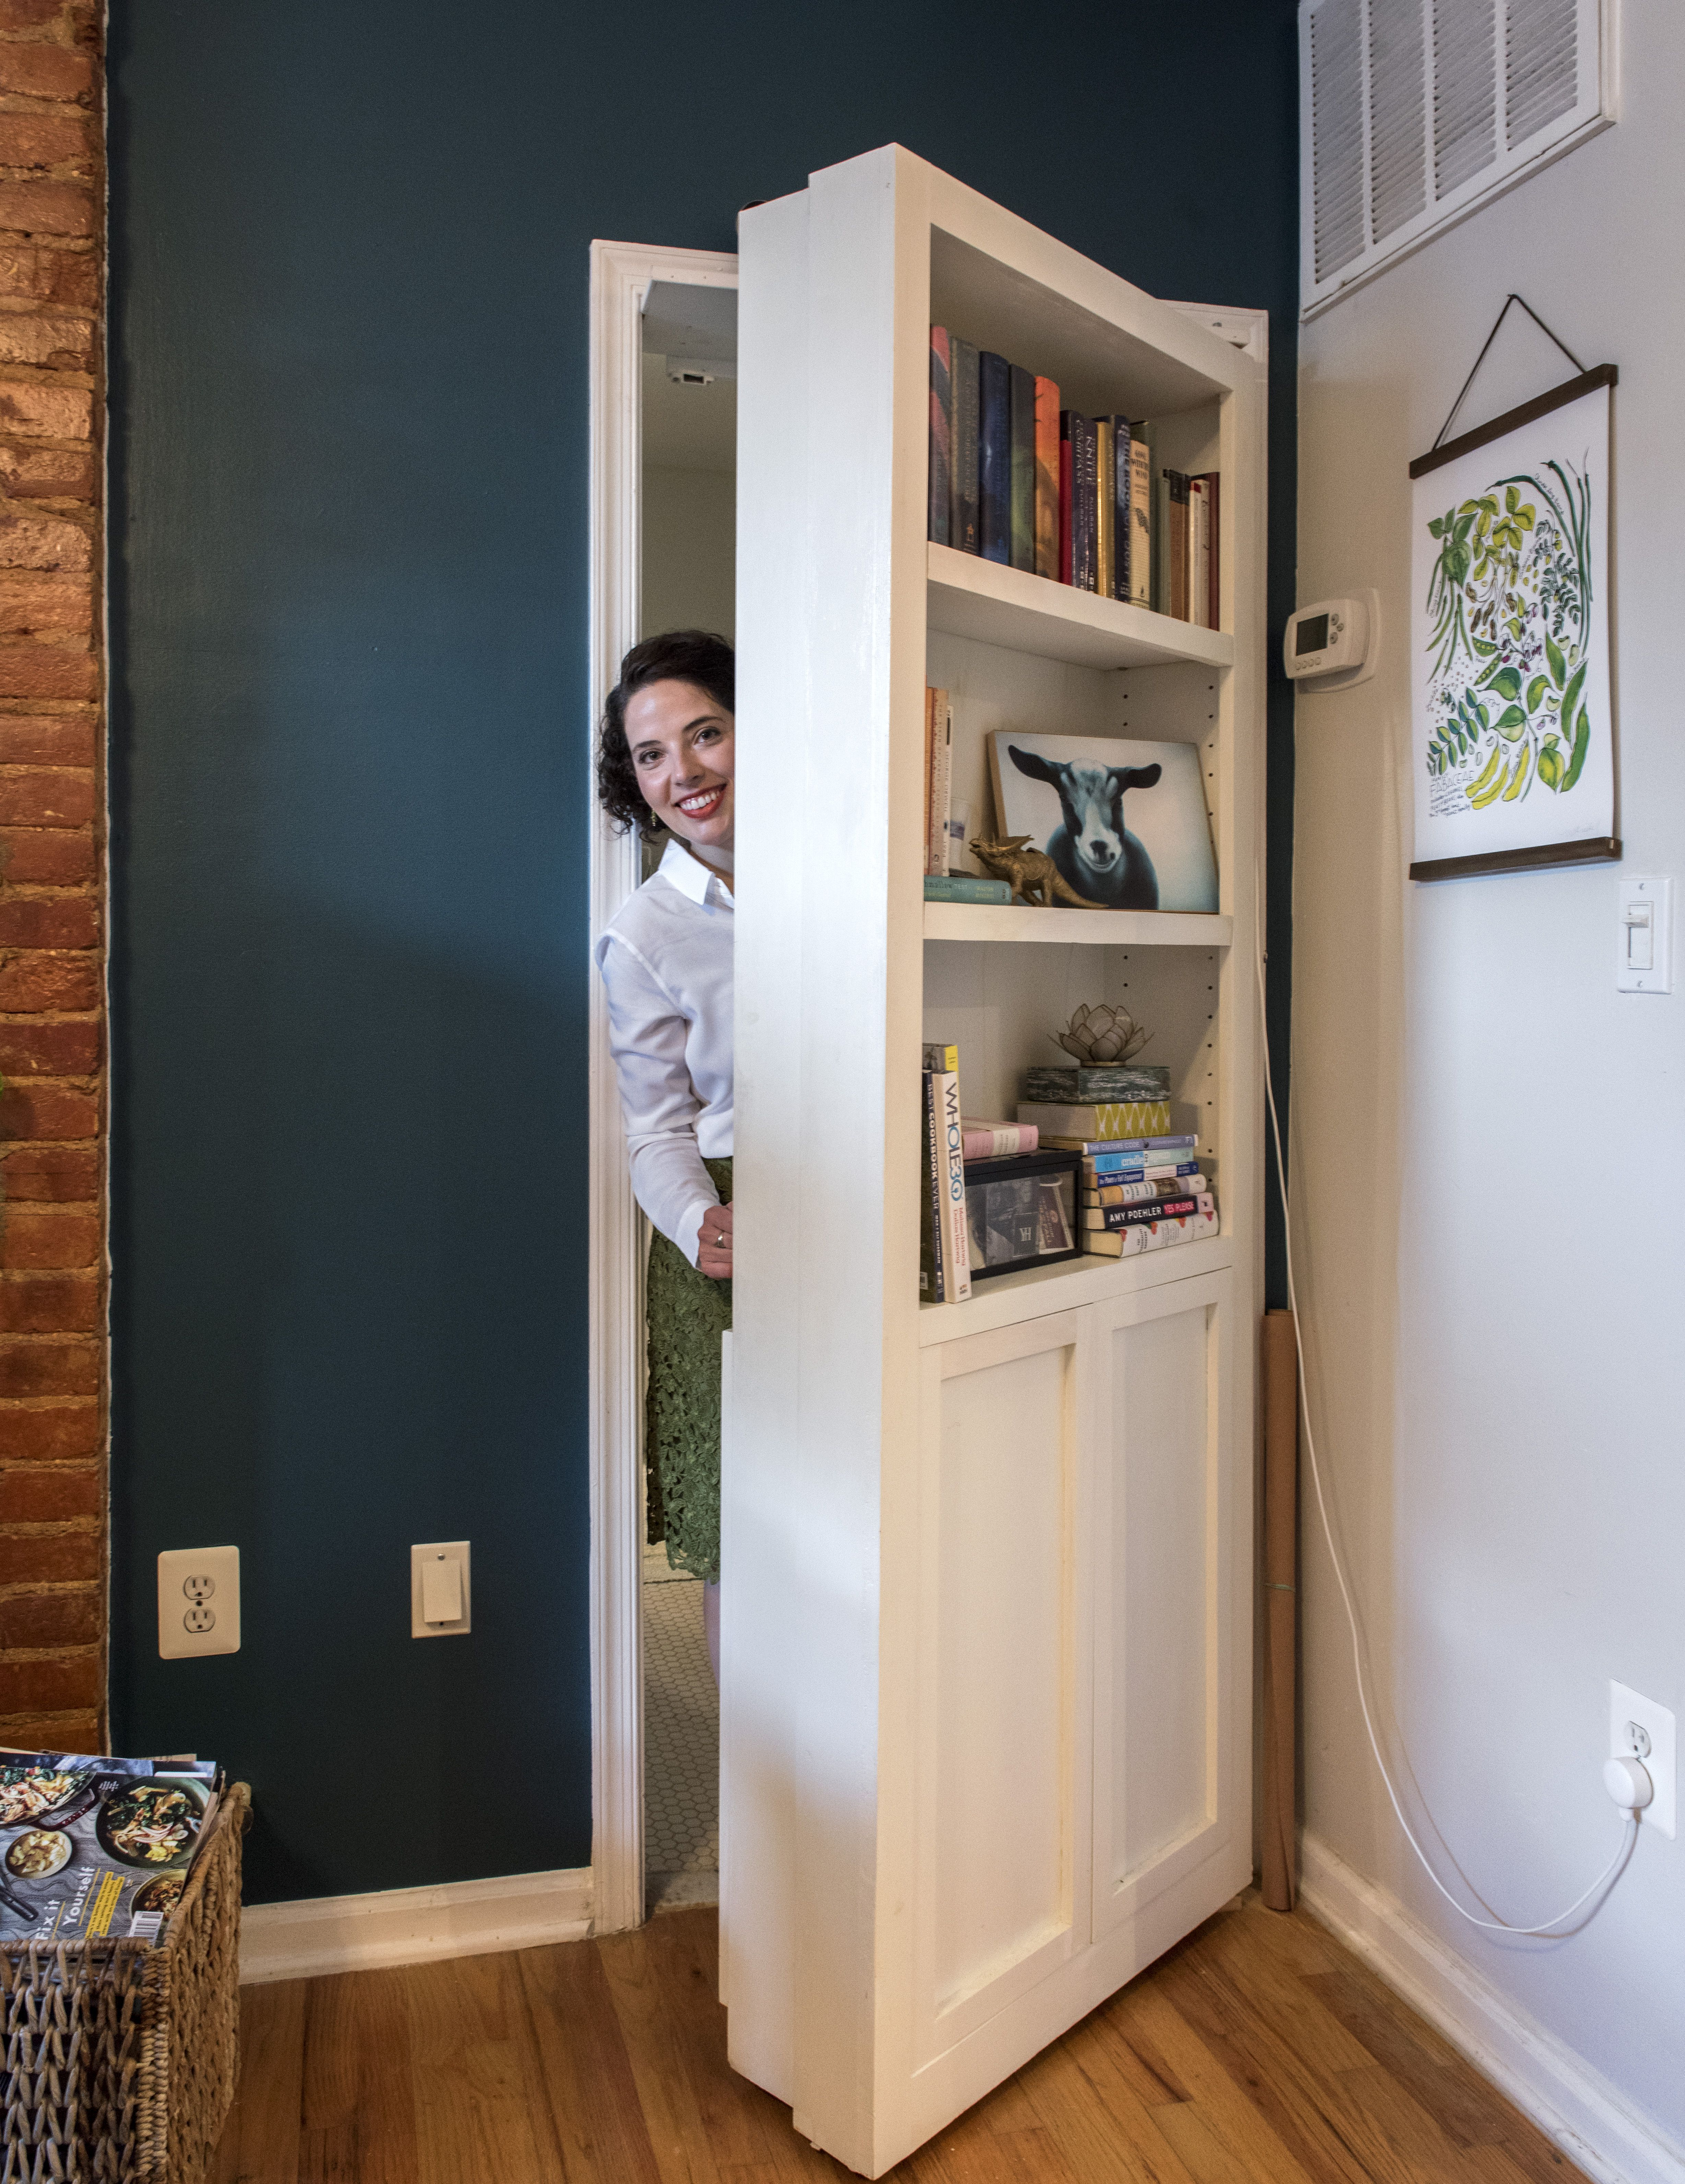 Concealed Doorways Are The Latest Trend In Home Design